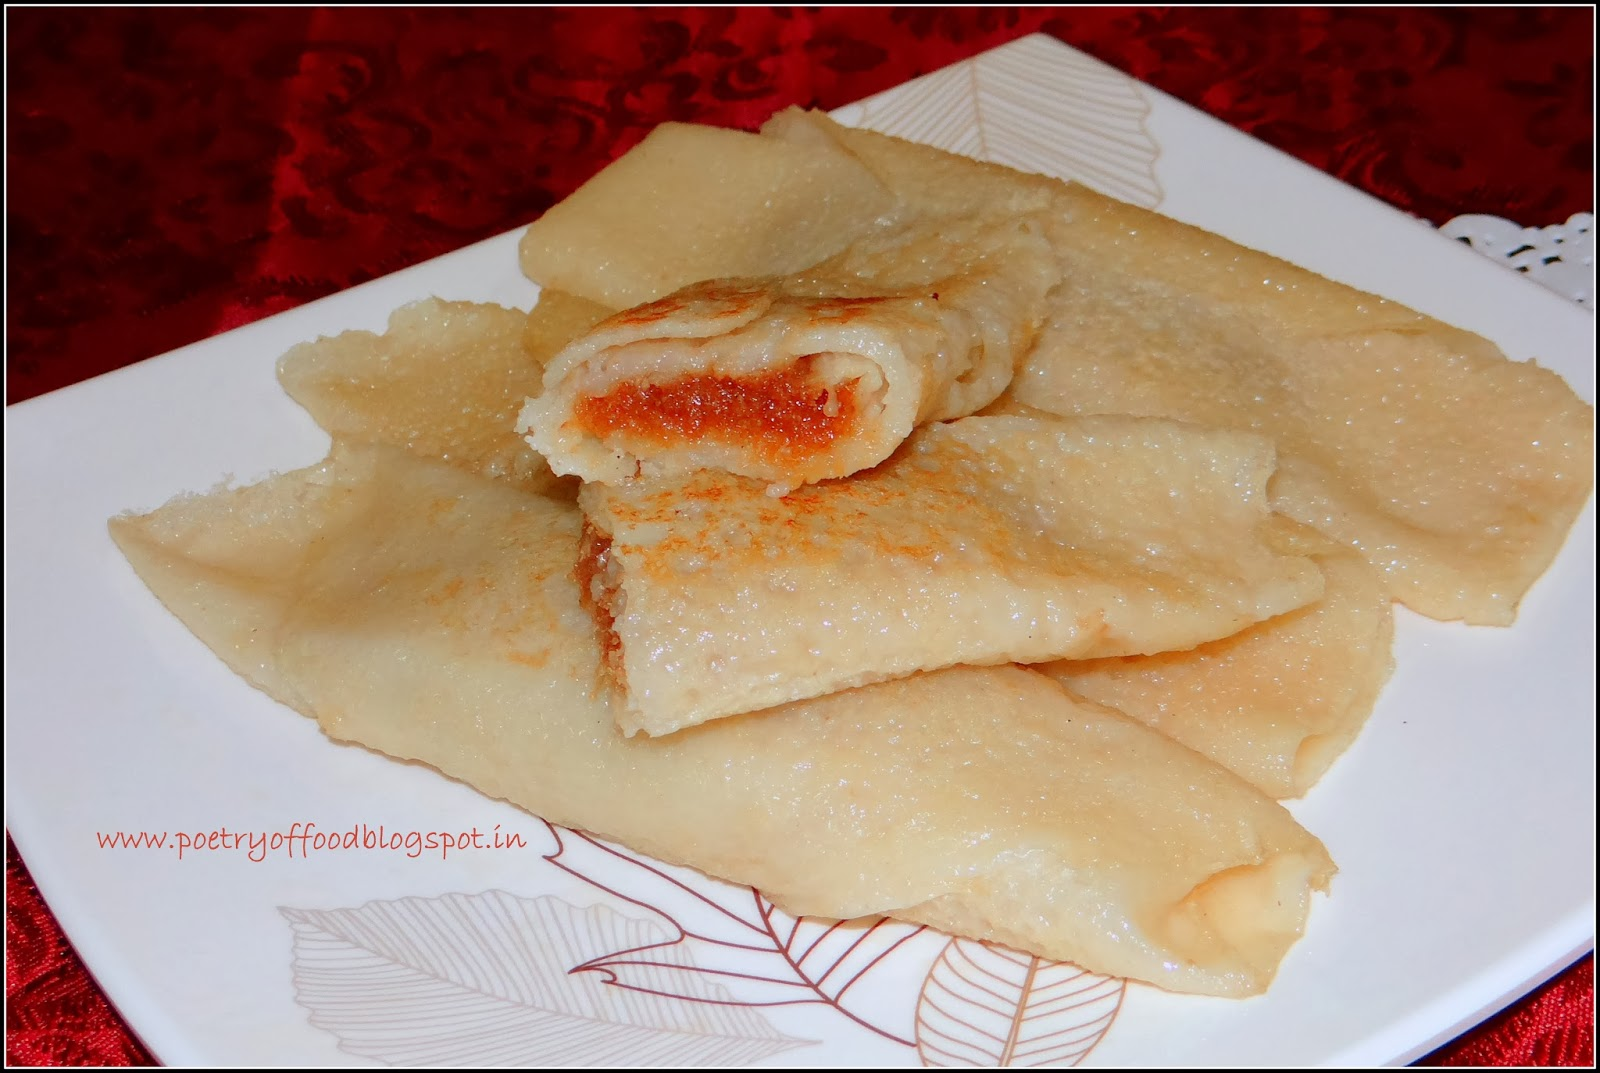 Of Food: Patishapta... A Crepe Filled With Sweet Coconut & Cardamom ...